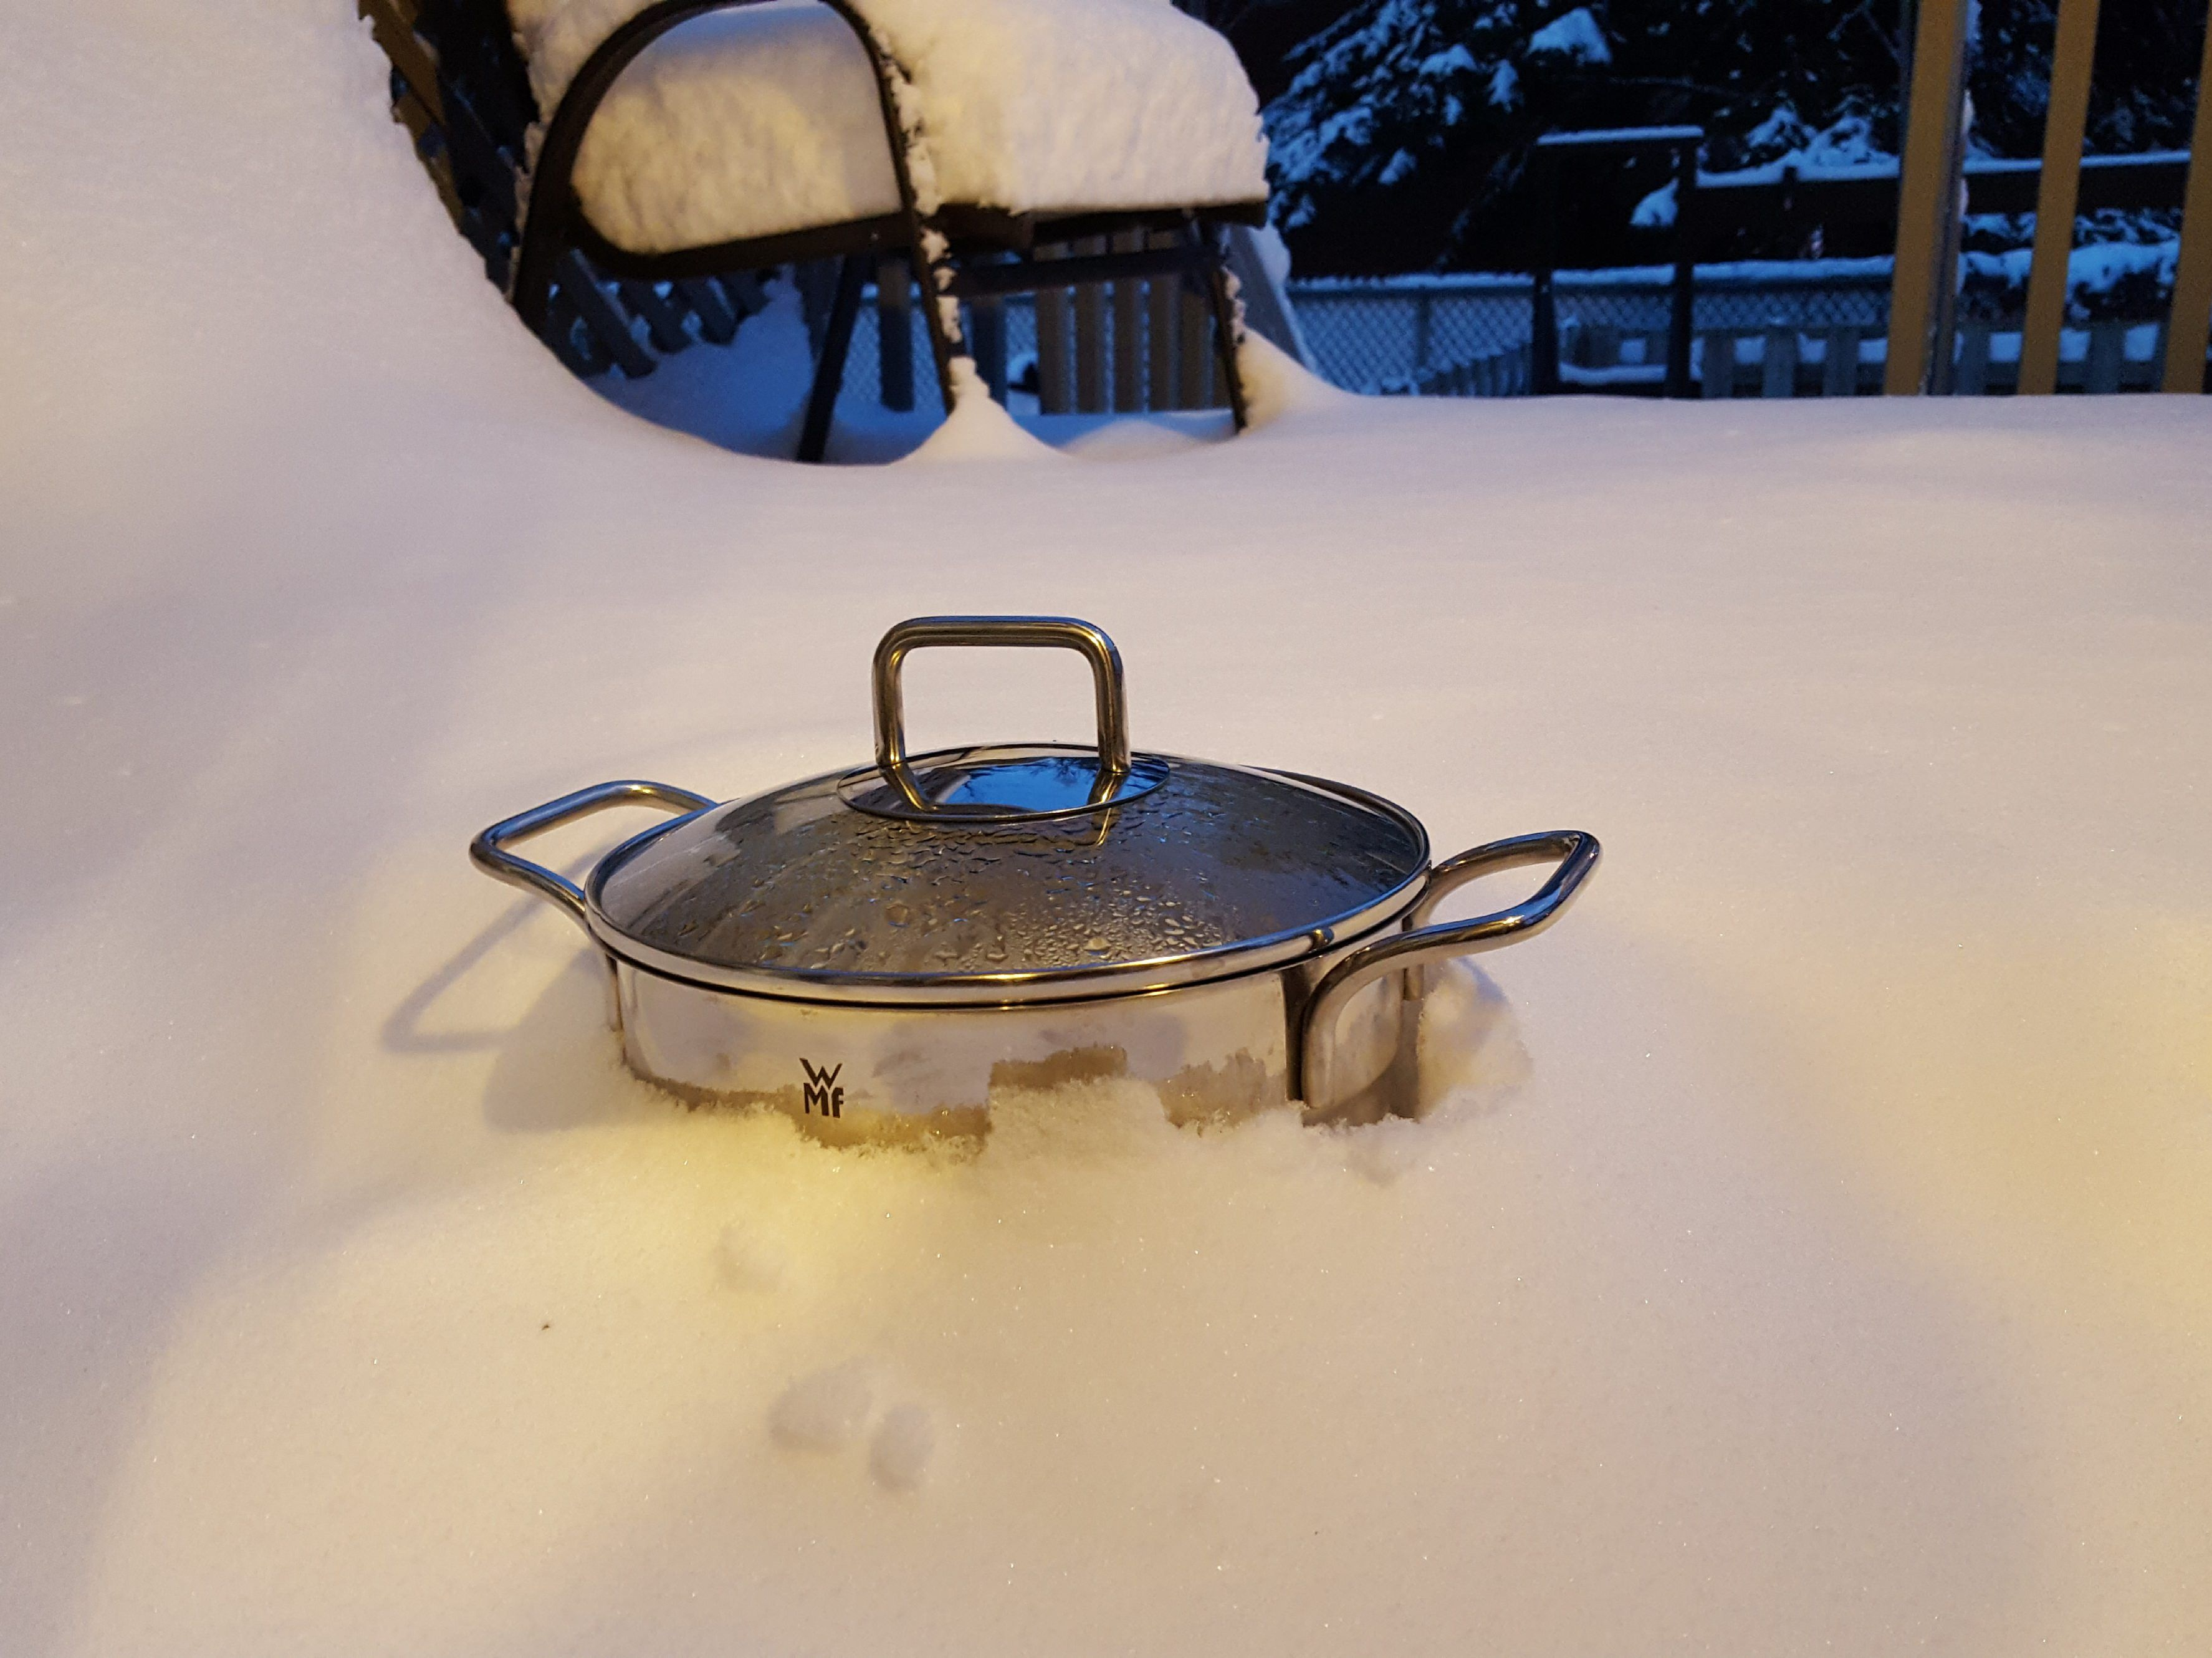 As a Canadian, this is how I cool down my food during the winter